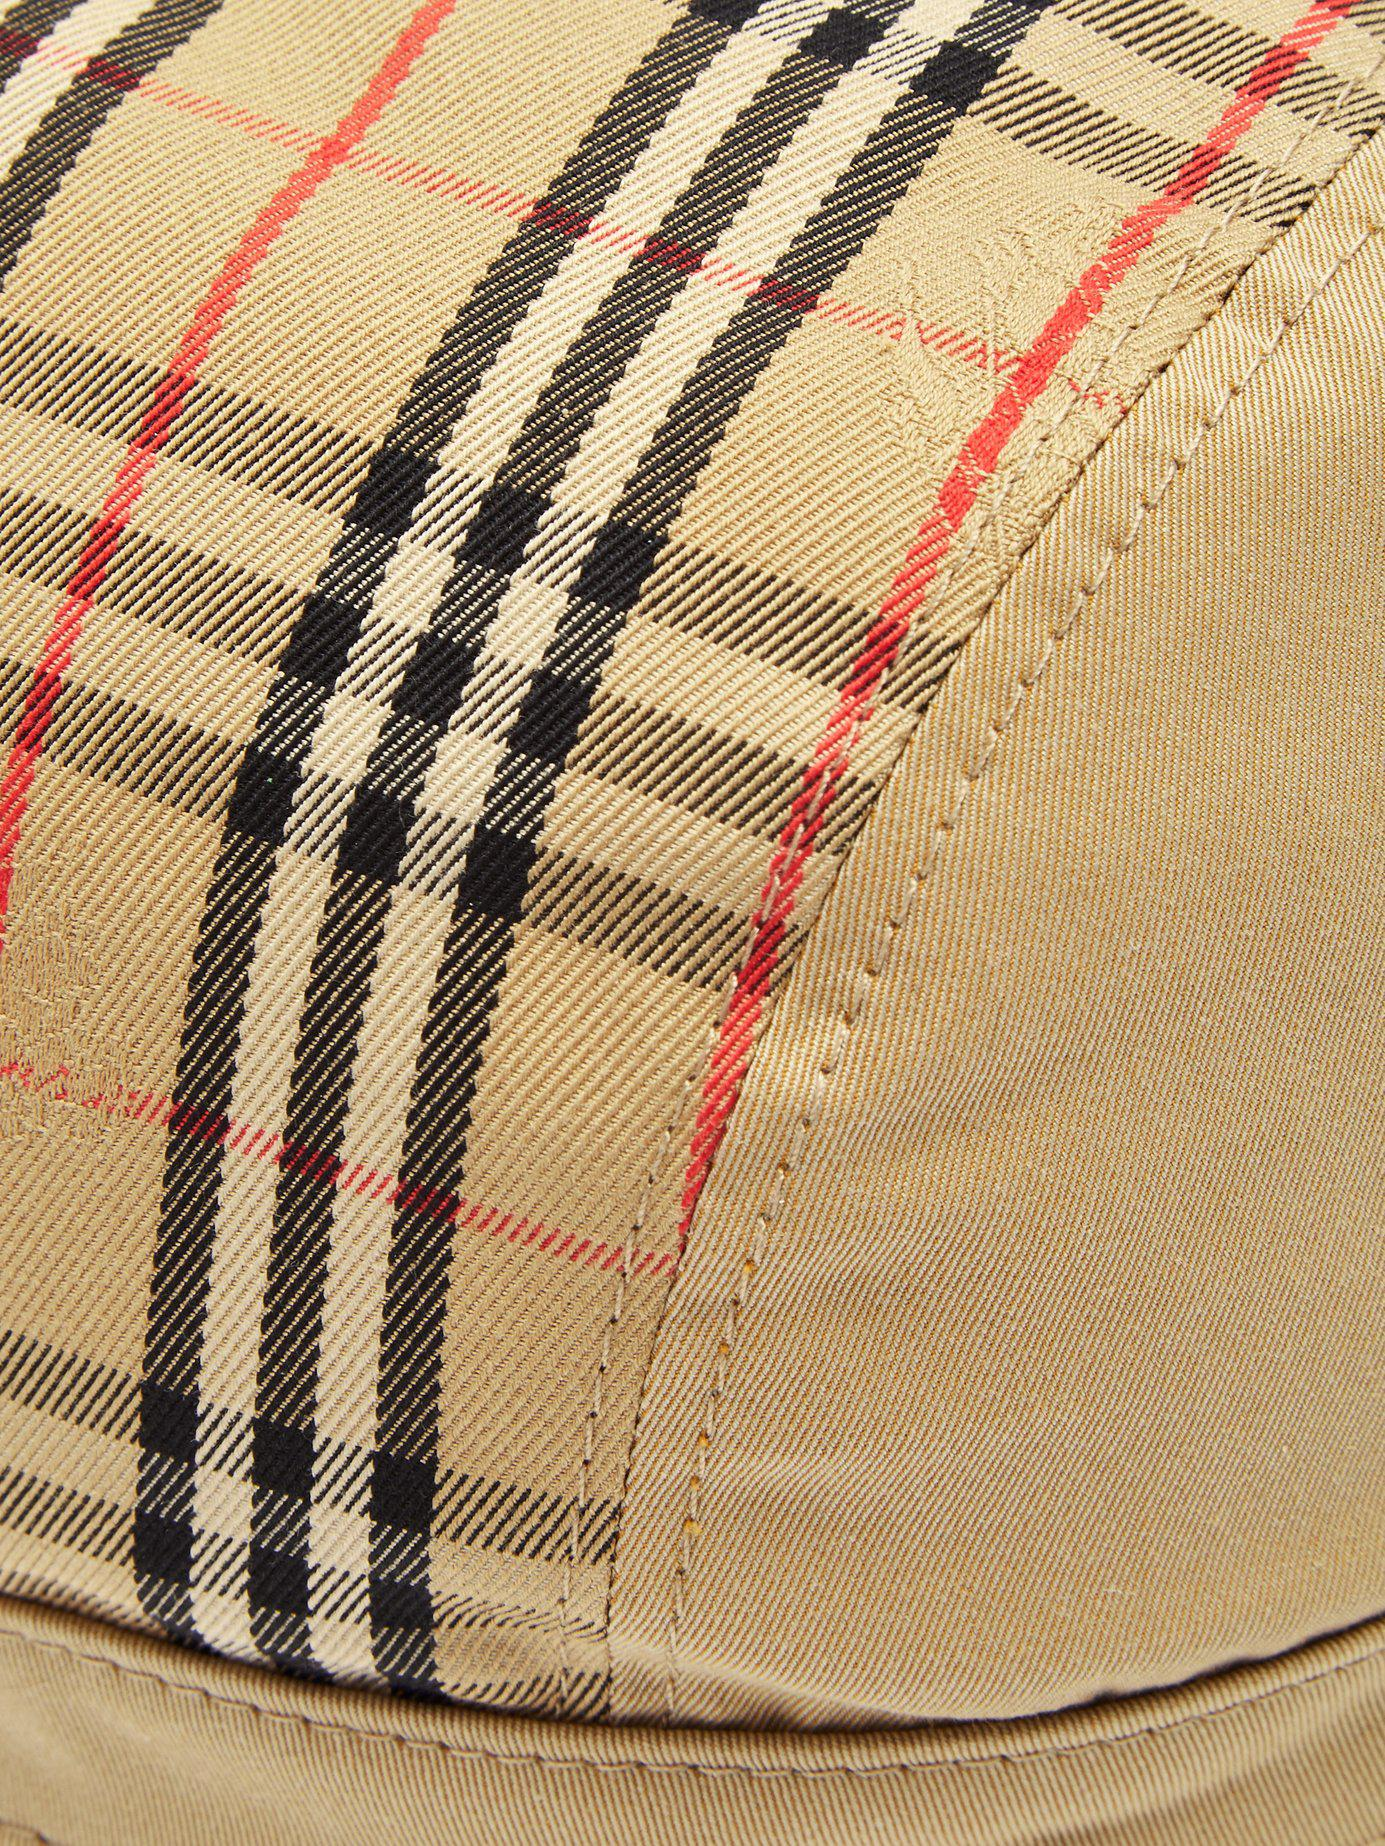 47d97e1d889 Lyst - Burberry 1983 Vintage Check Bucket Hat in Natural for Men